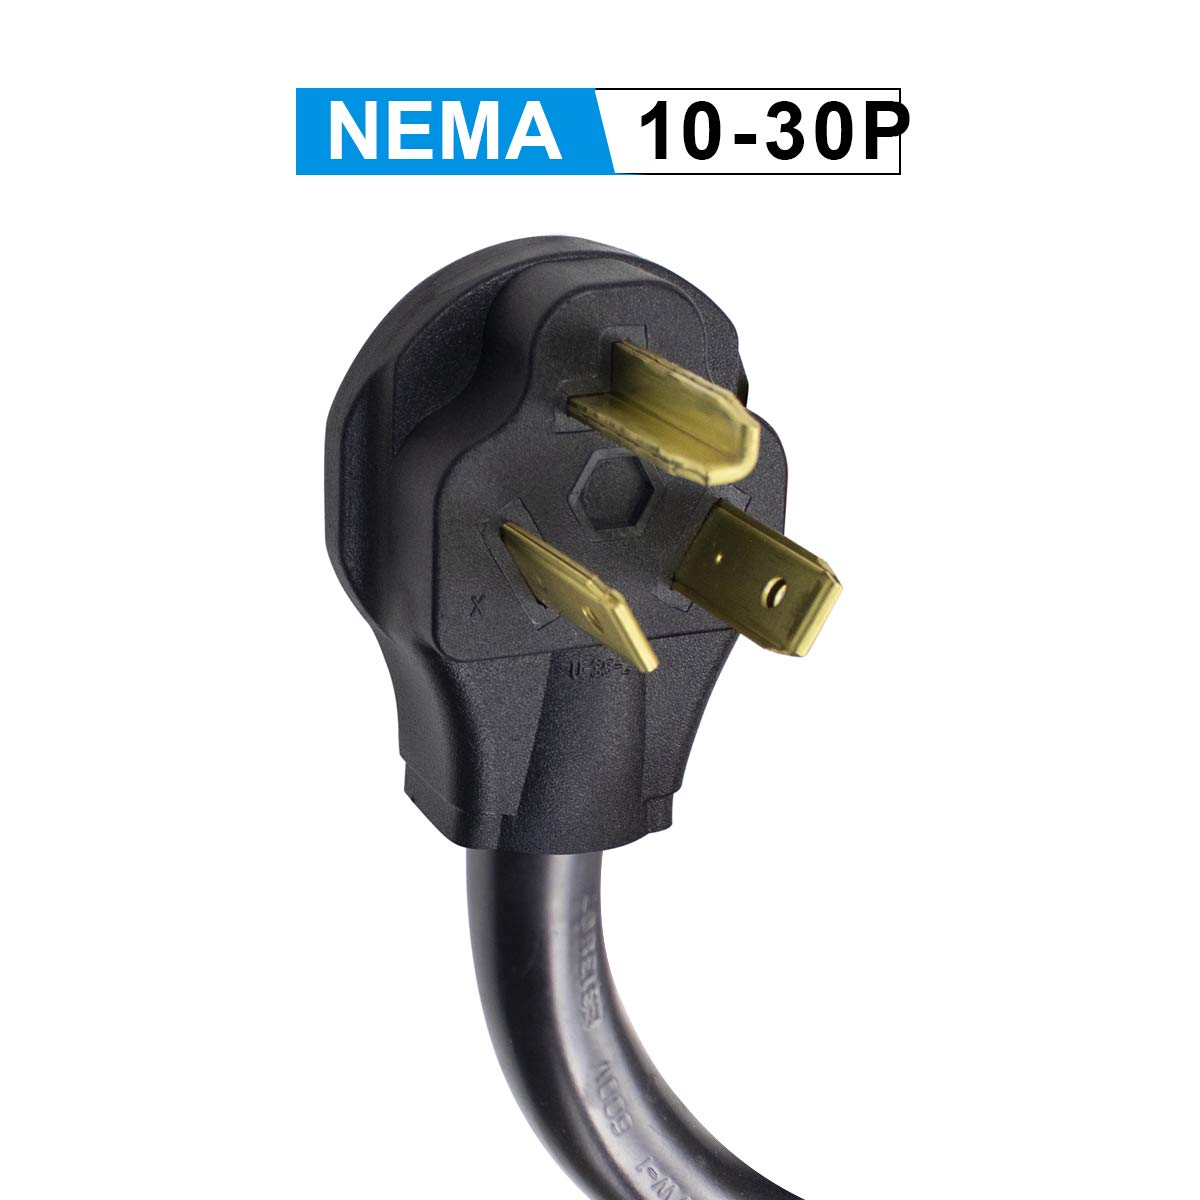 Morec NEMA10-30P to NEMA14-50R Adapter, Compatible with NEMA14-50 16 amp to 40 amp EV Charger, (3-Prong Dryer to Cars) by Morec (Image #3)